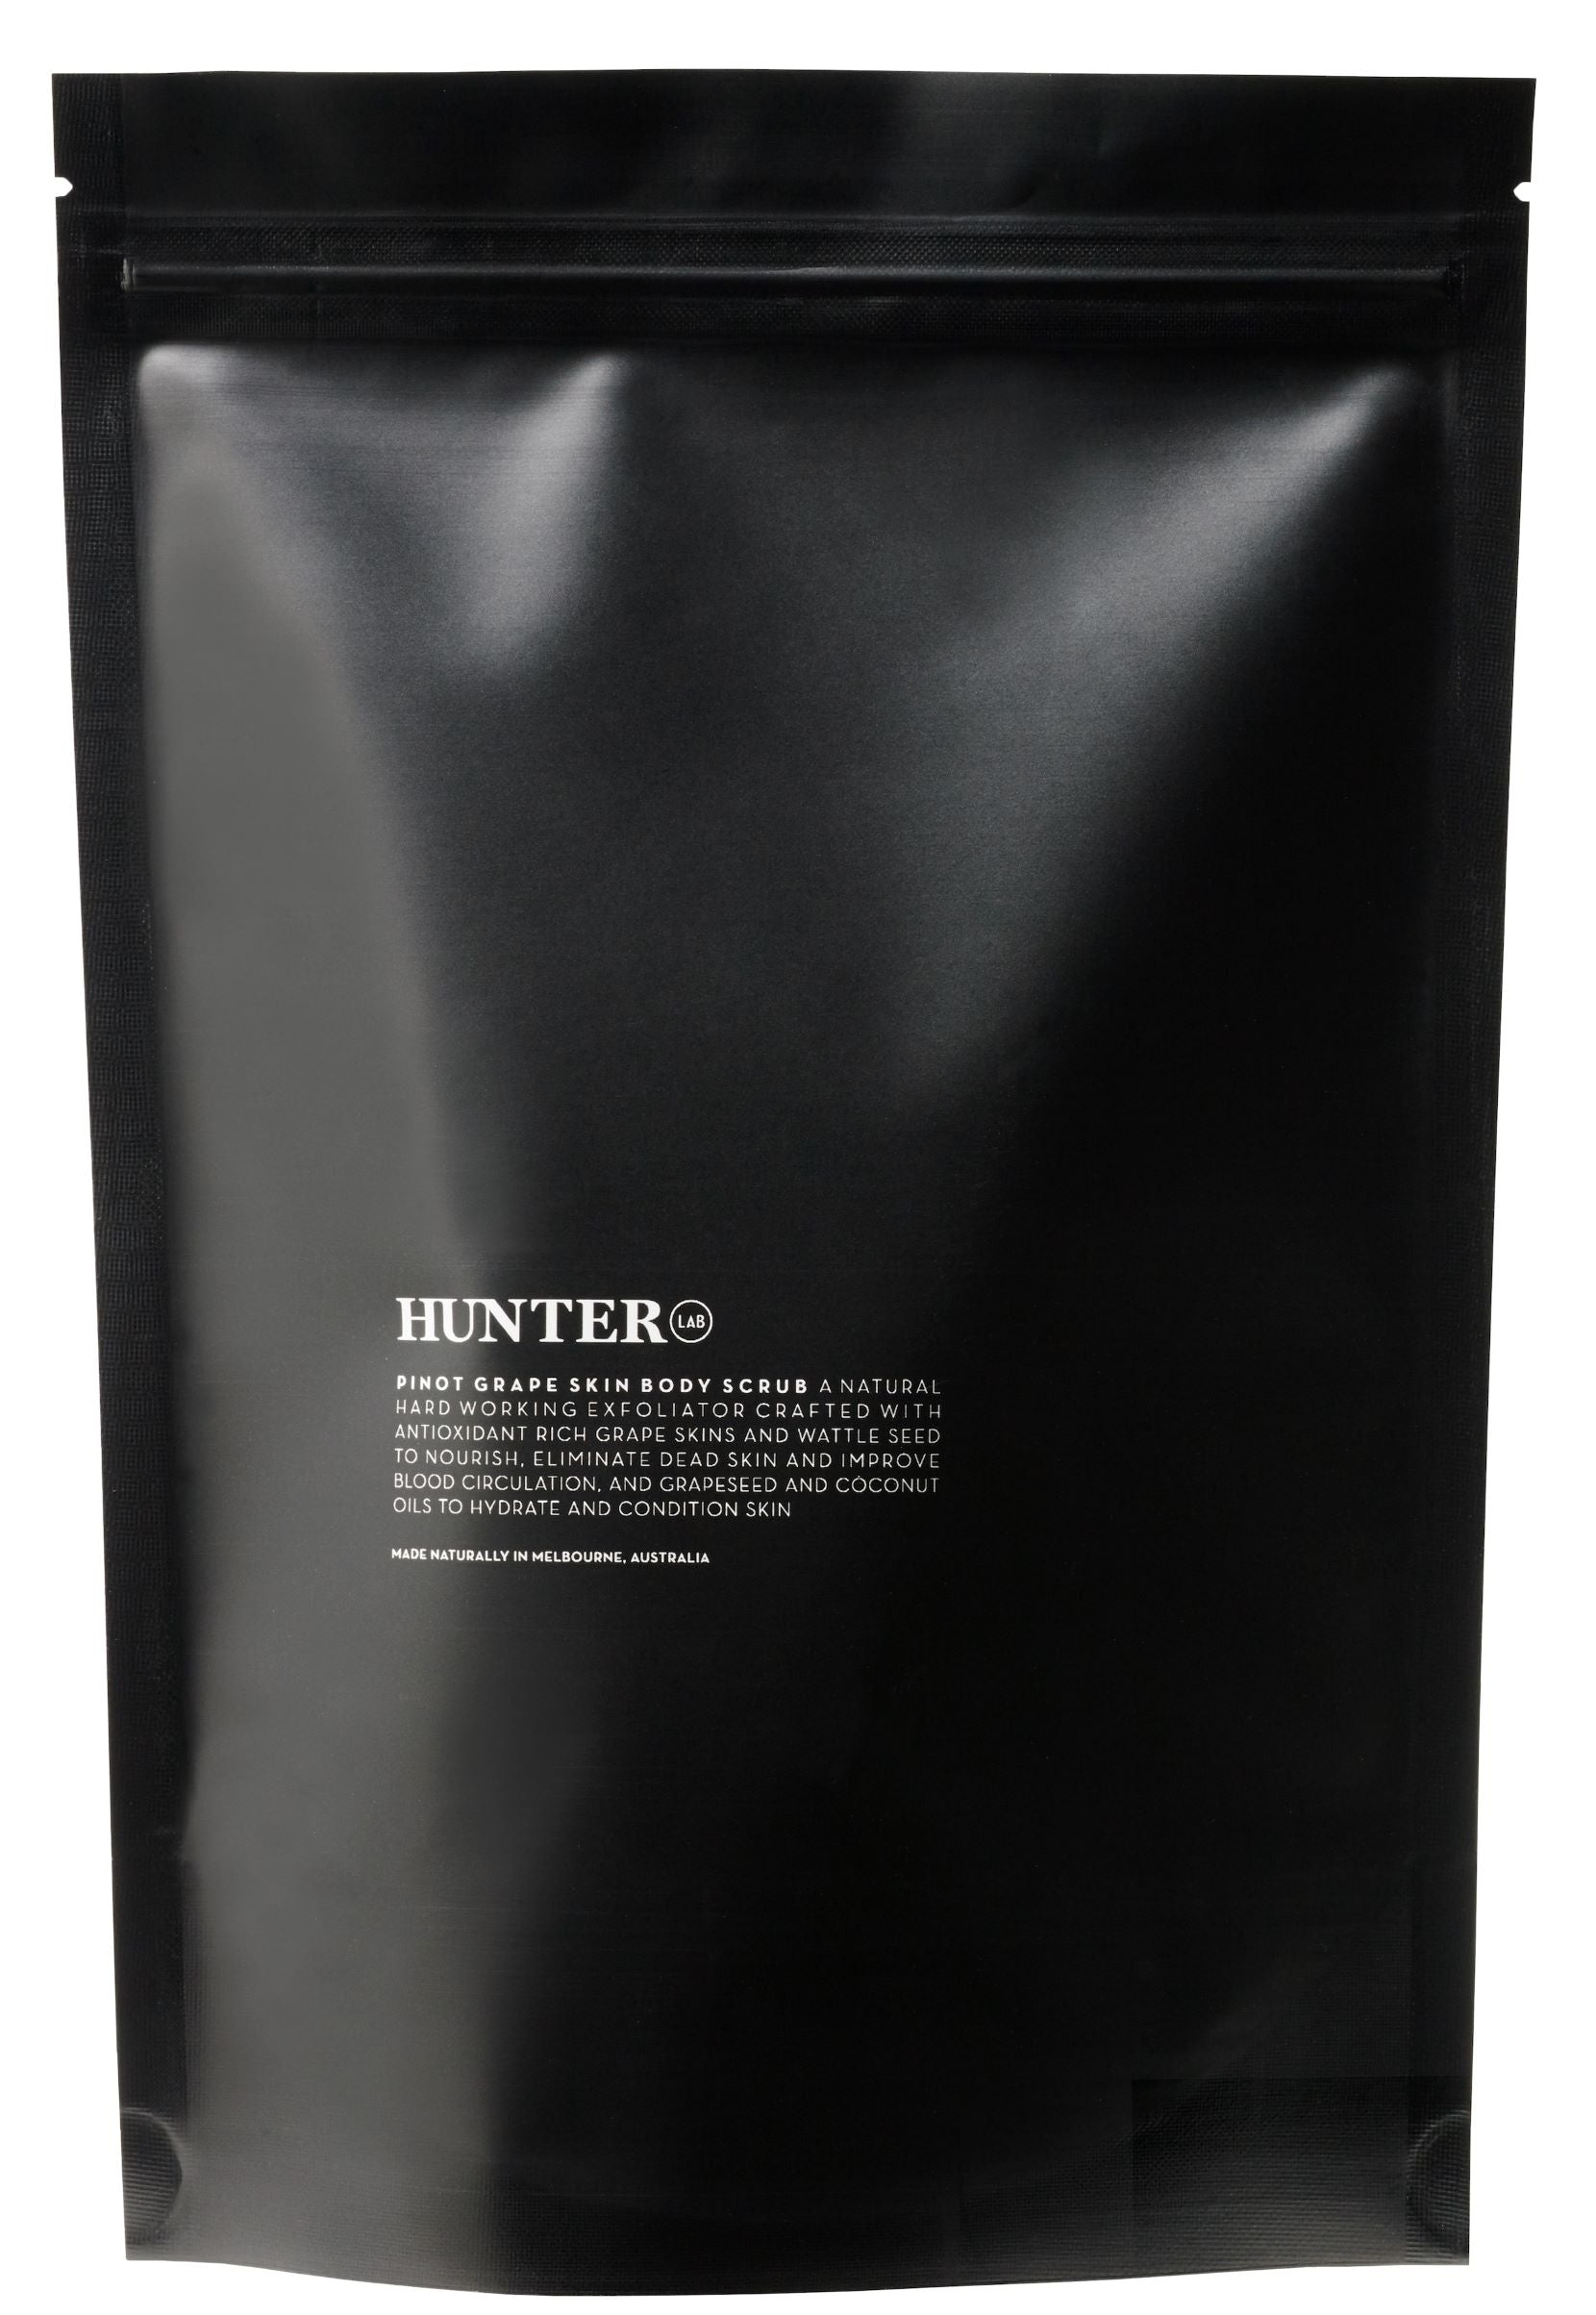 Pinot Grape Skin Body Scrub by Hunter Lab 200g - Luna and Beau